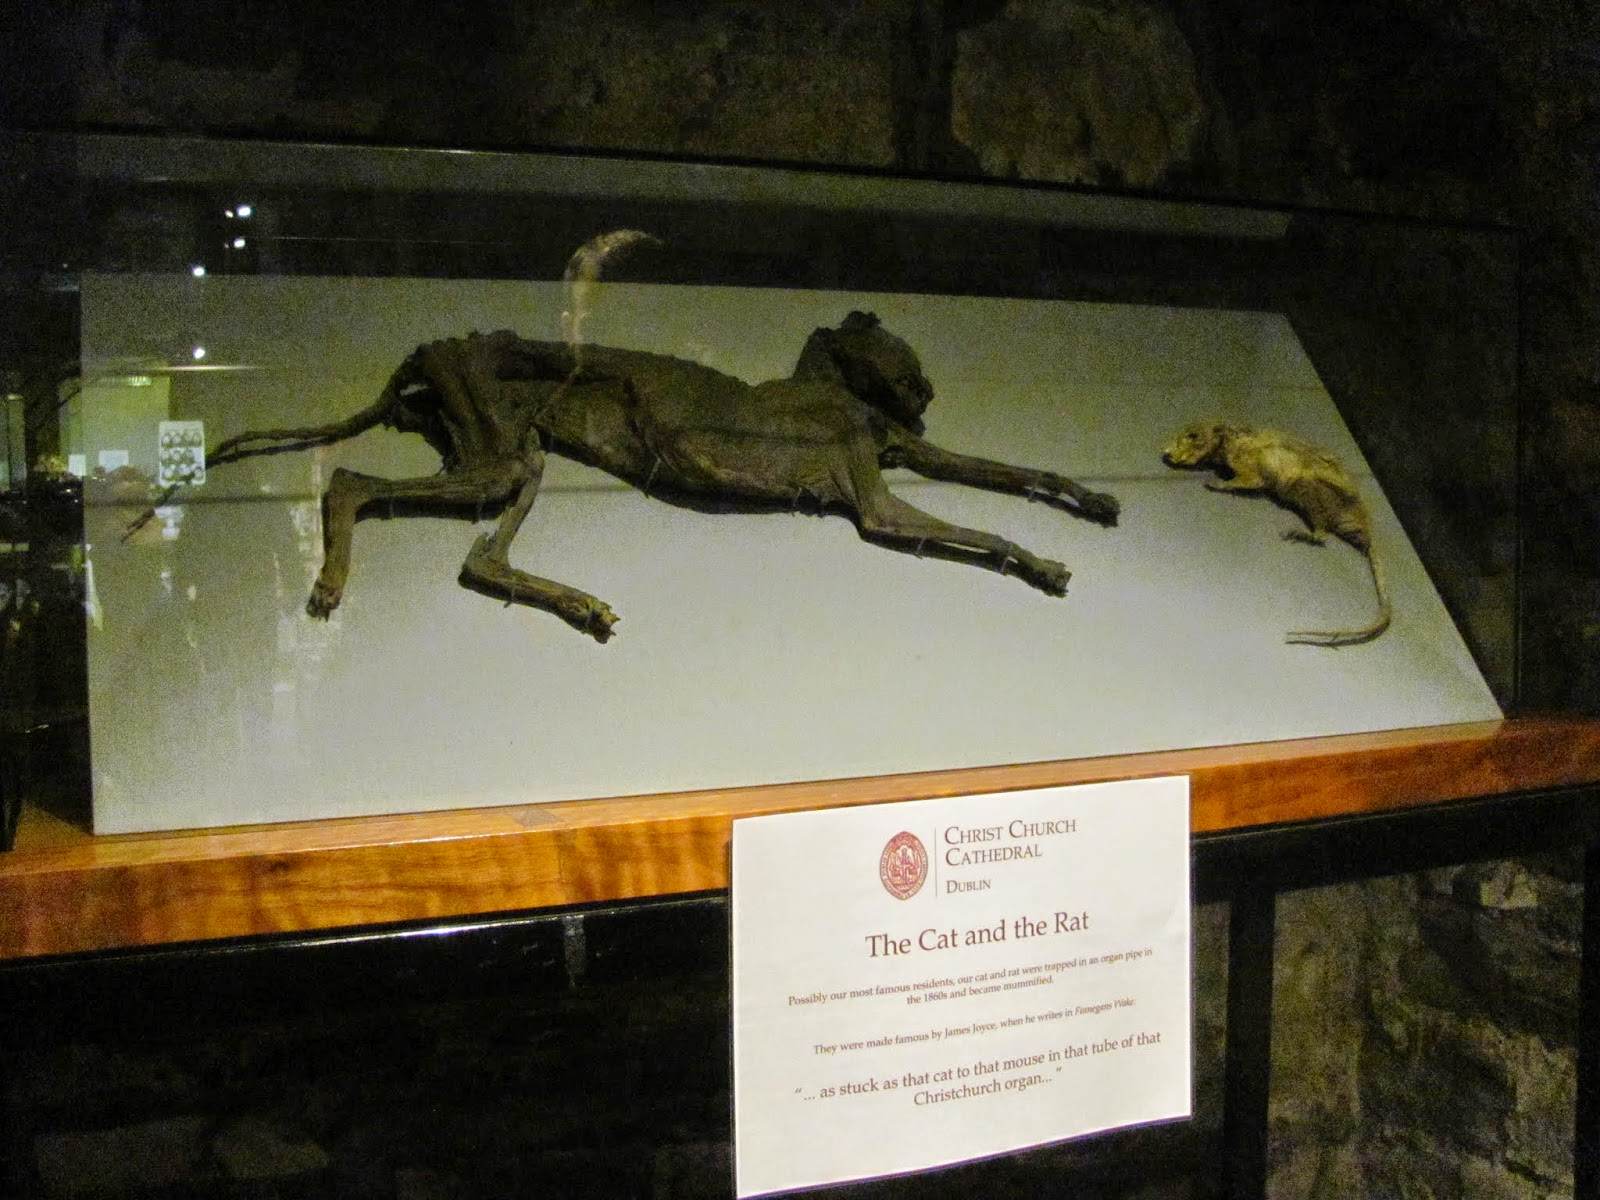 Mummified Cat and Rat—Christ Church Cathedral